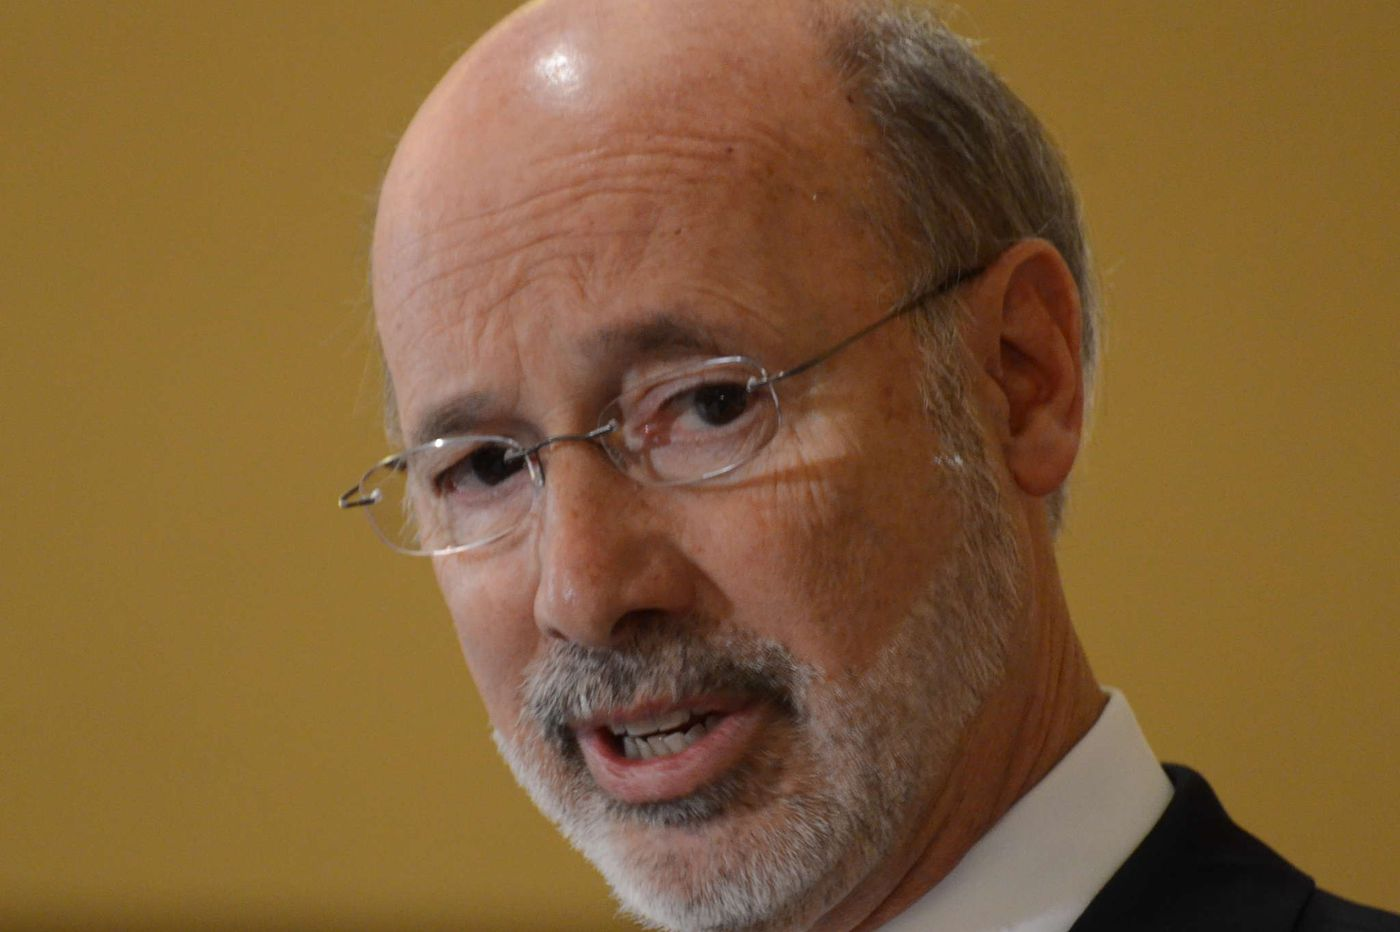 Pennsylvania criticized for how it handles elder abuse cases